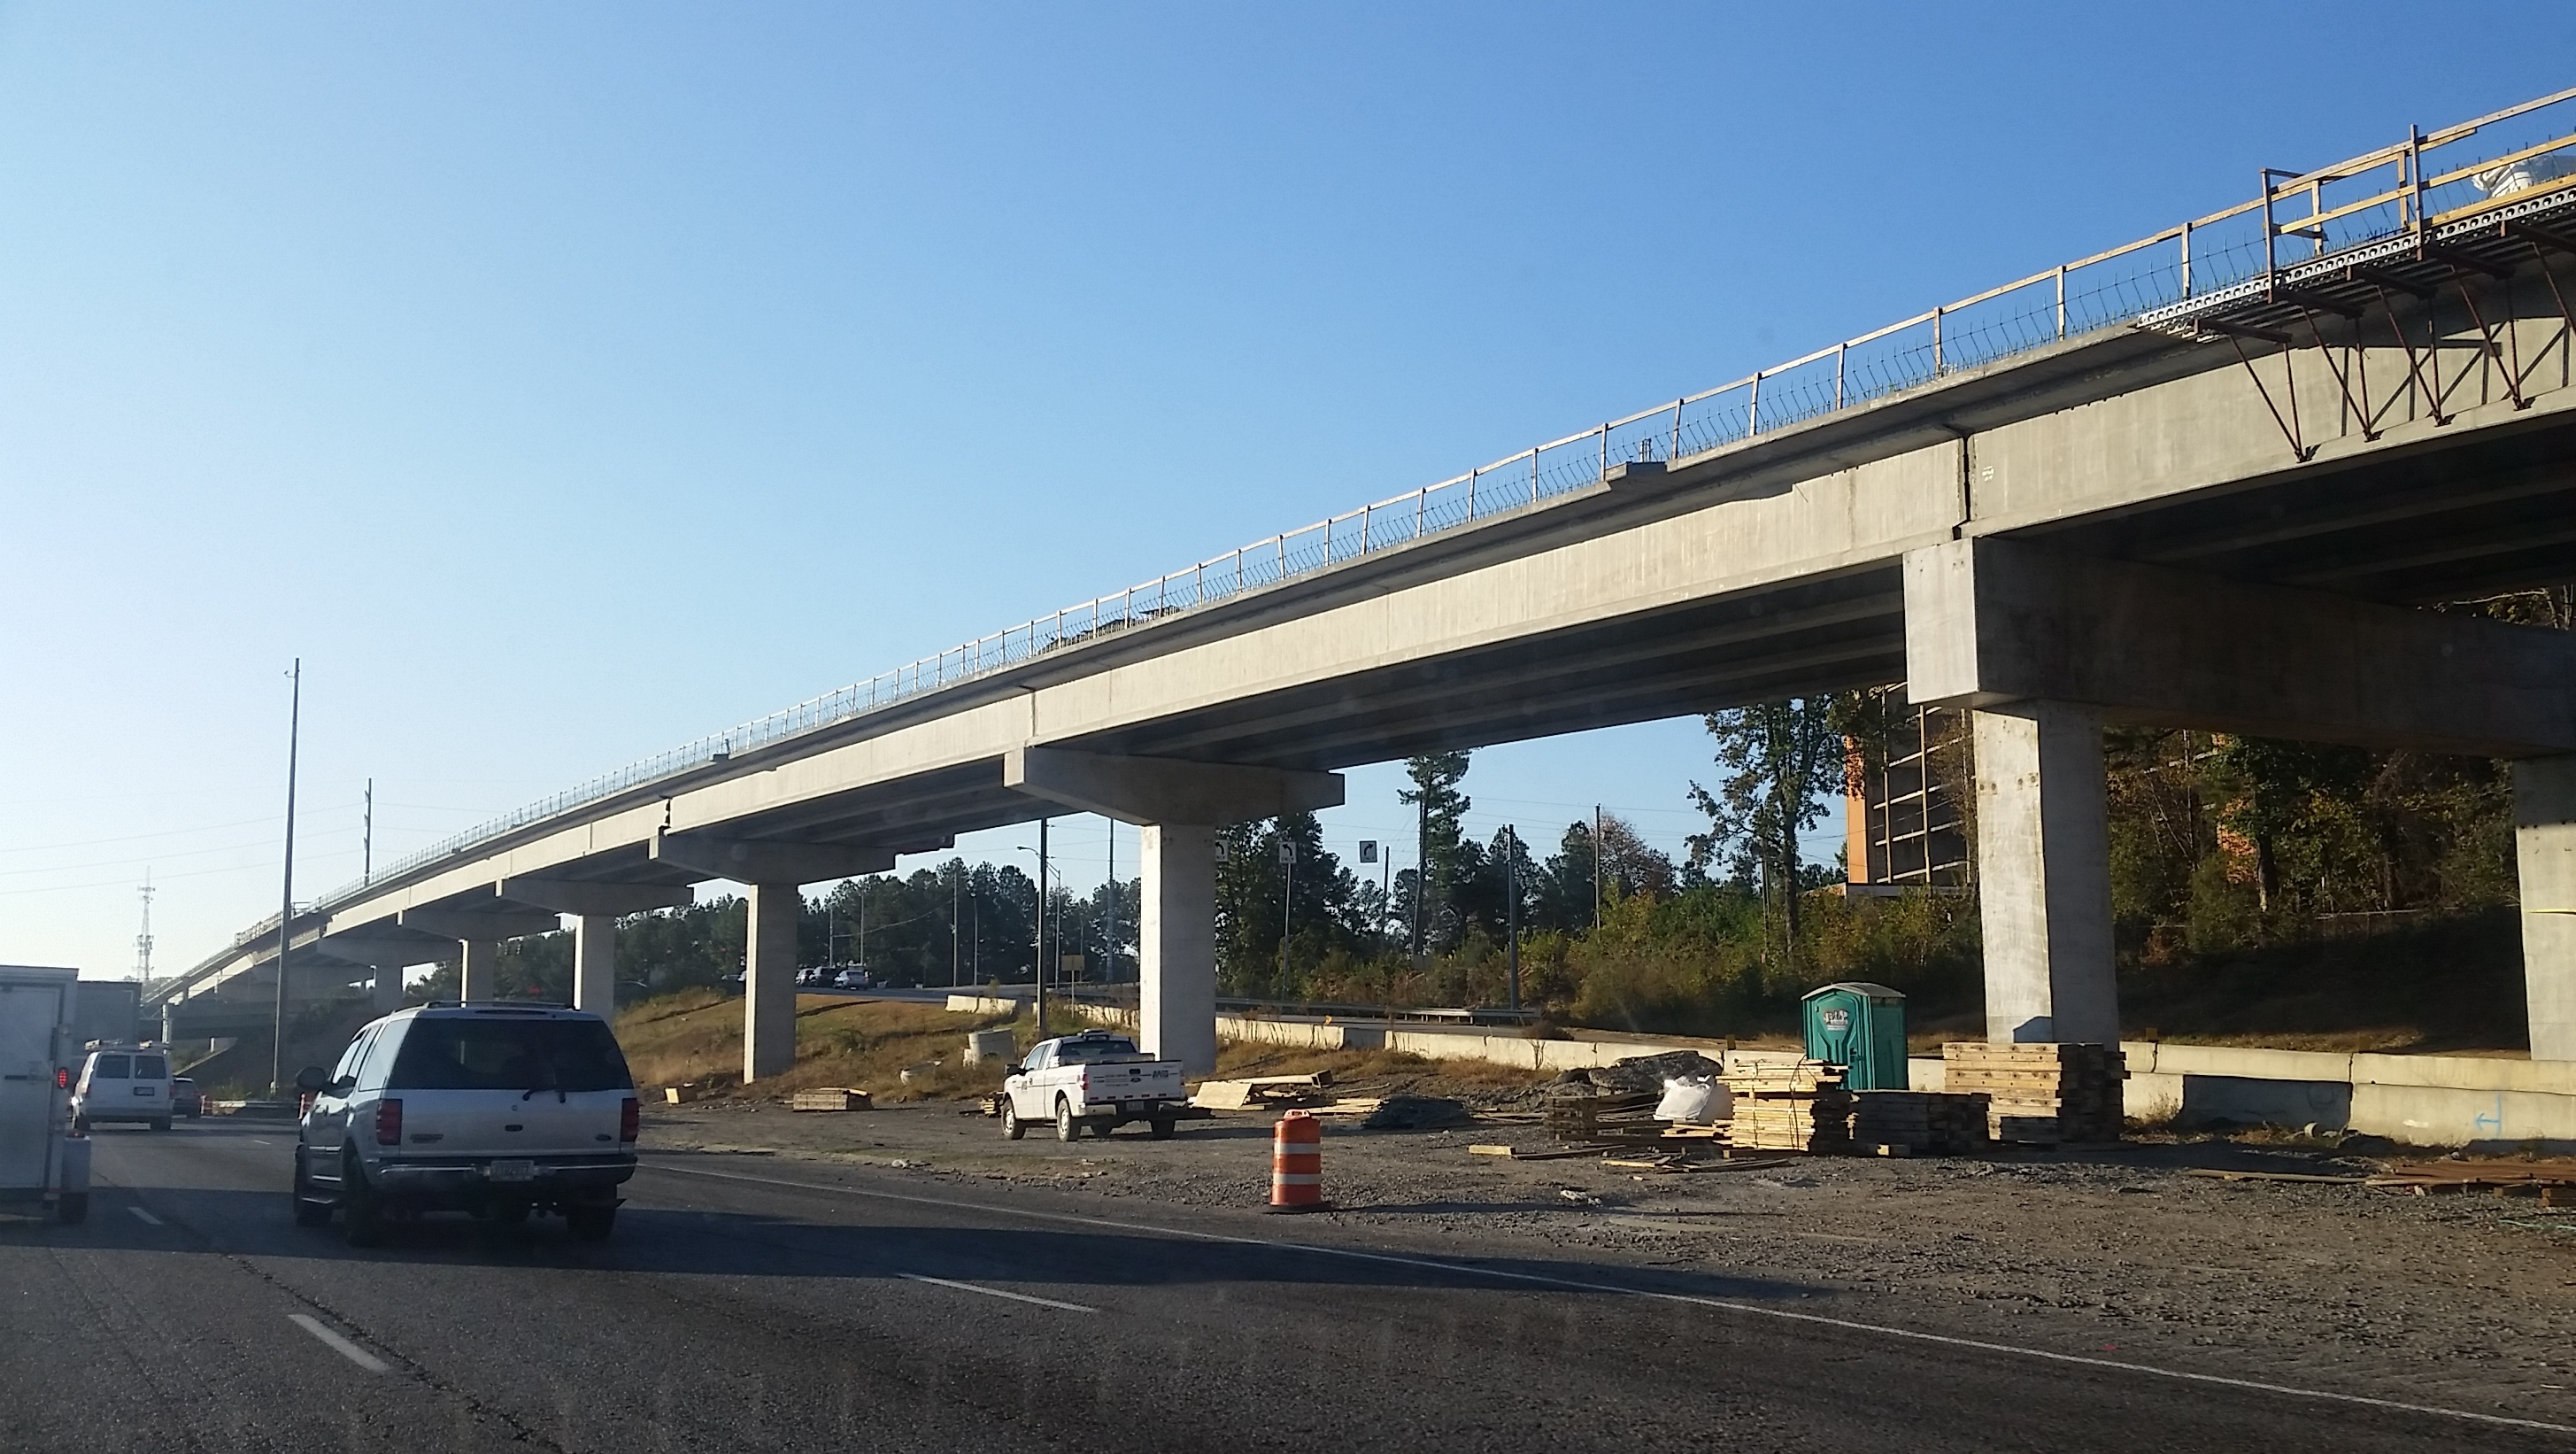 The Northwest Corridor Express toll lanes, reversible lanes along I-75/I-575 on the north side of metro Atlanta, are set to open in 2018.